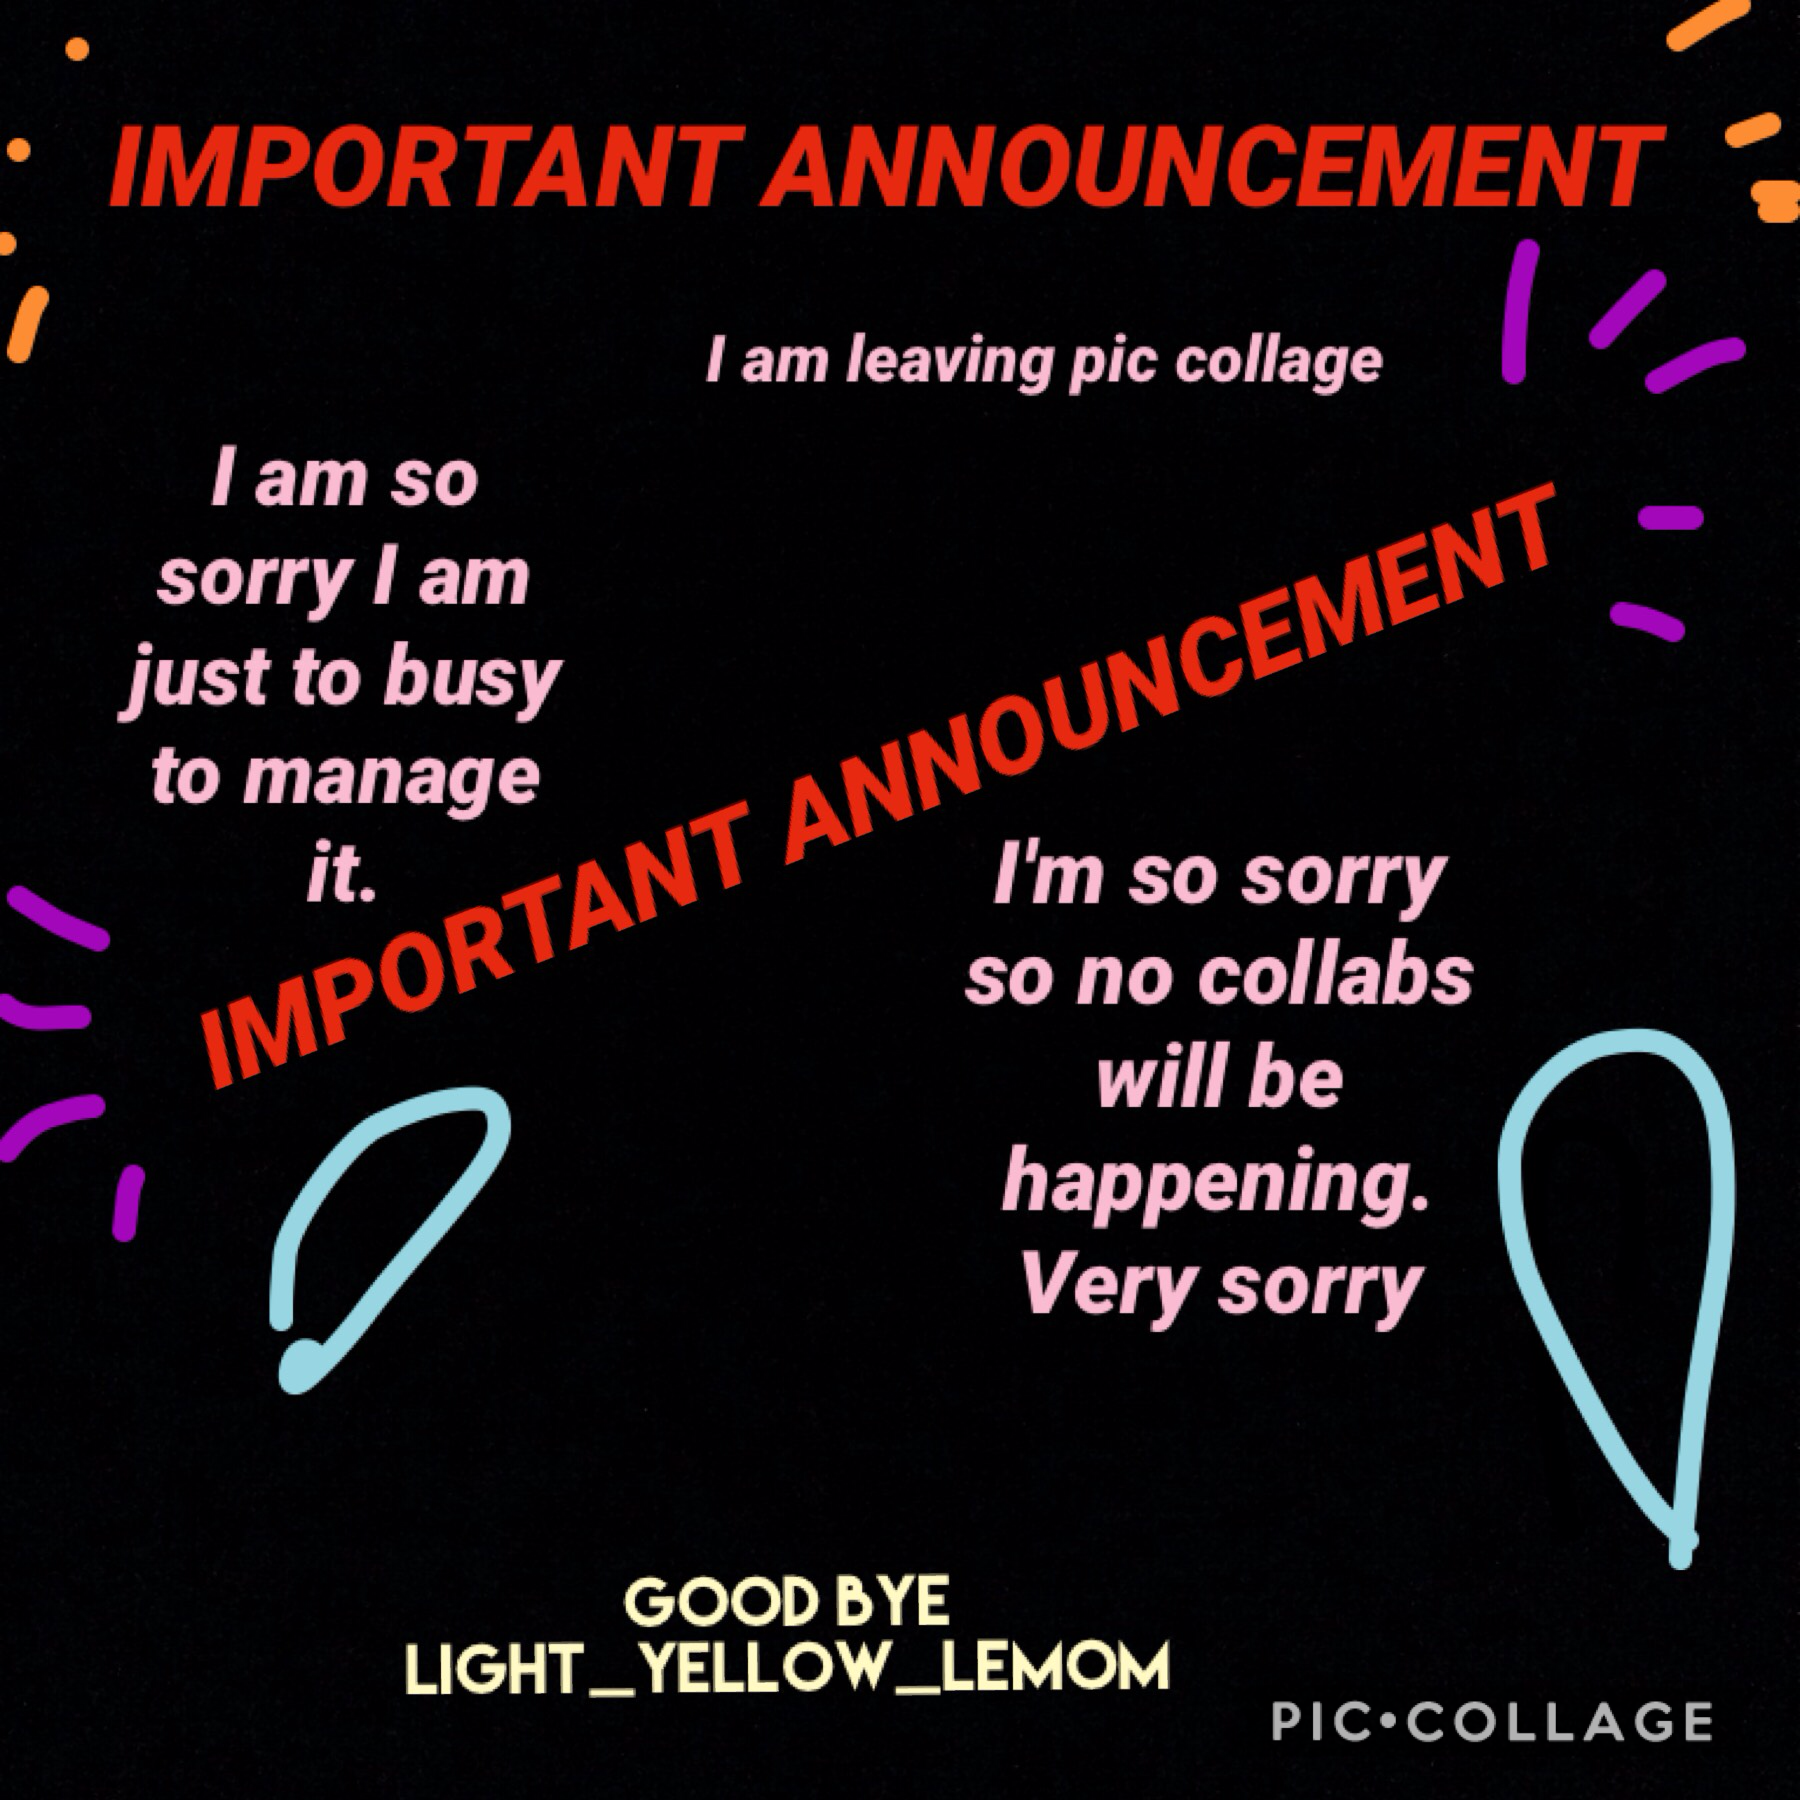 So sorry I'm leaving my account will still be up but I will not be active at all